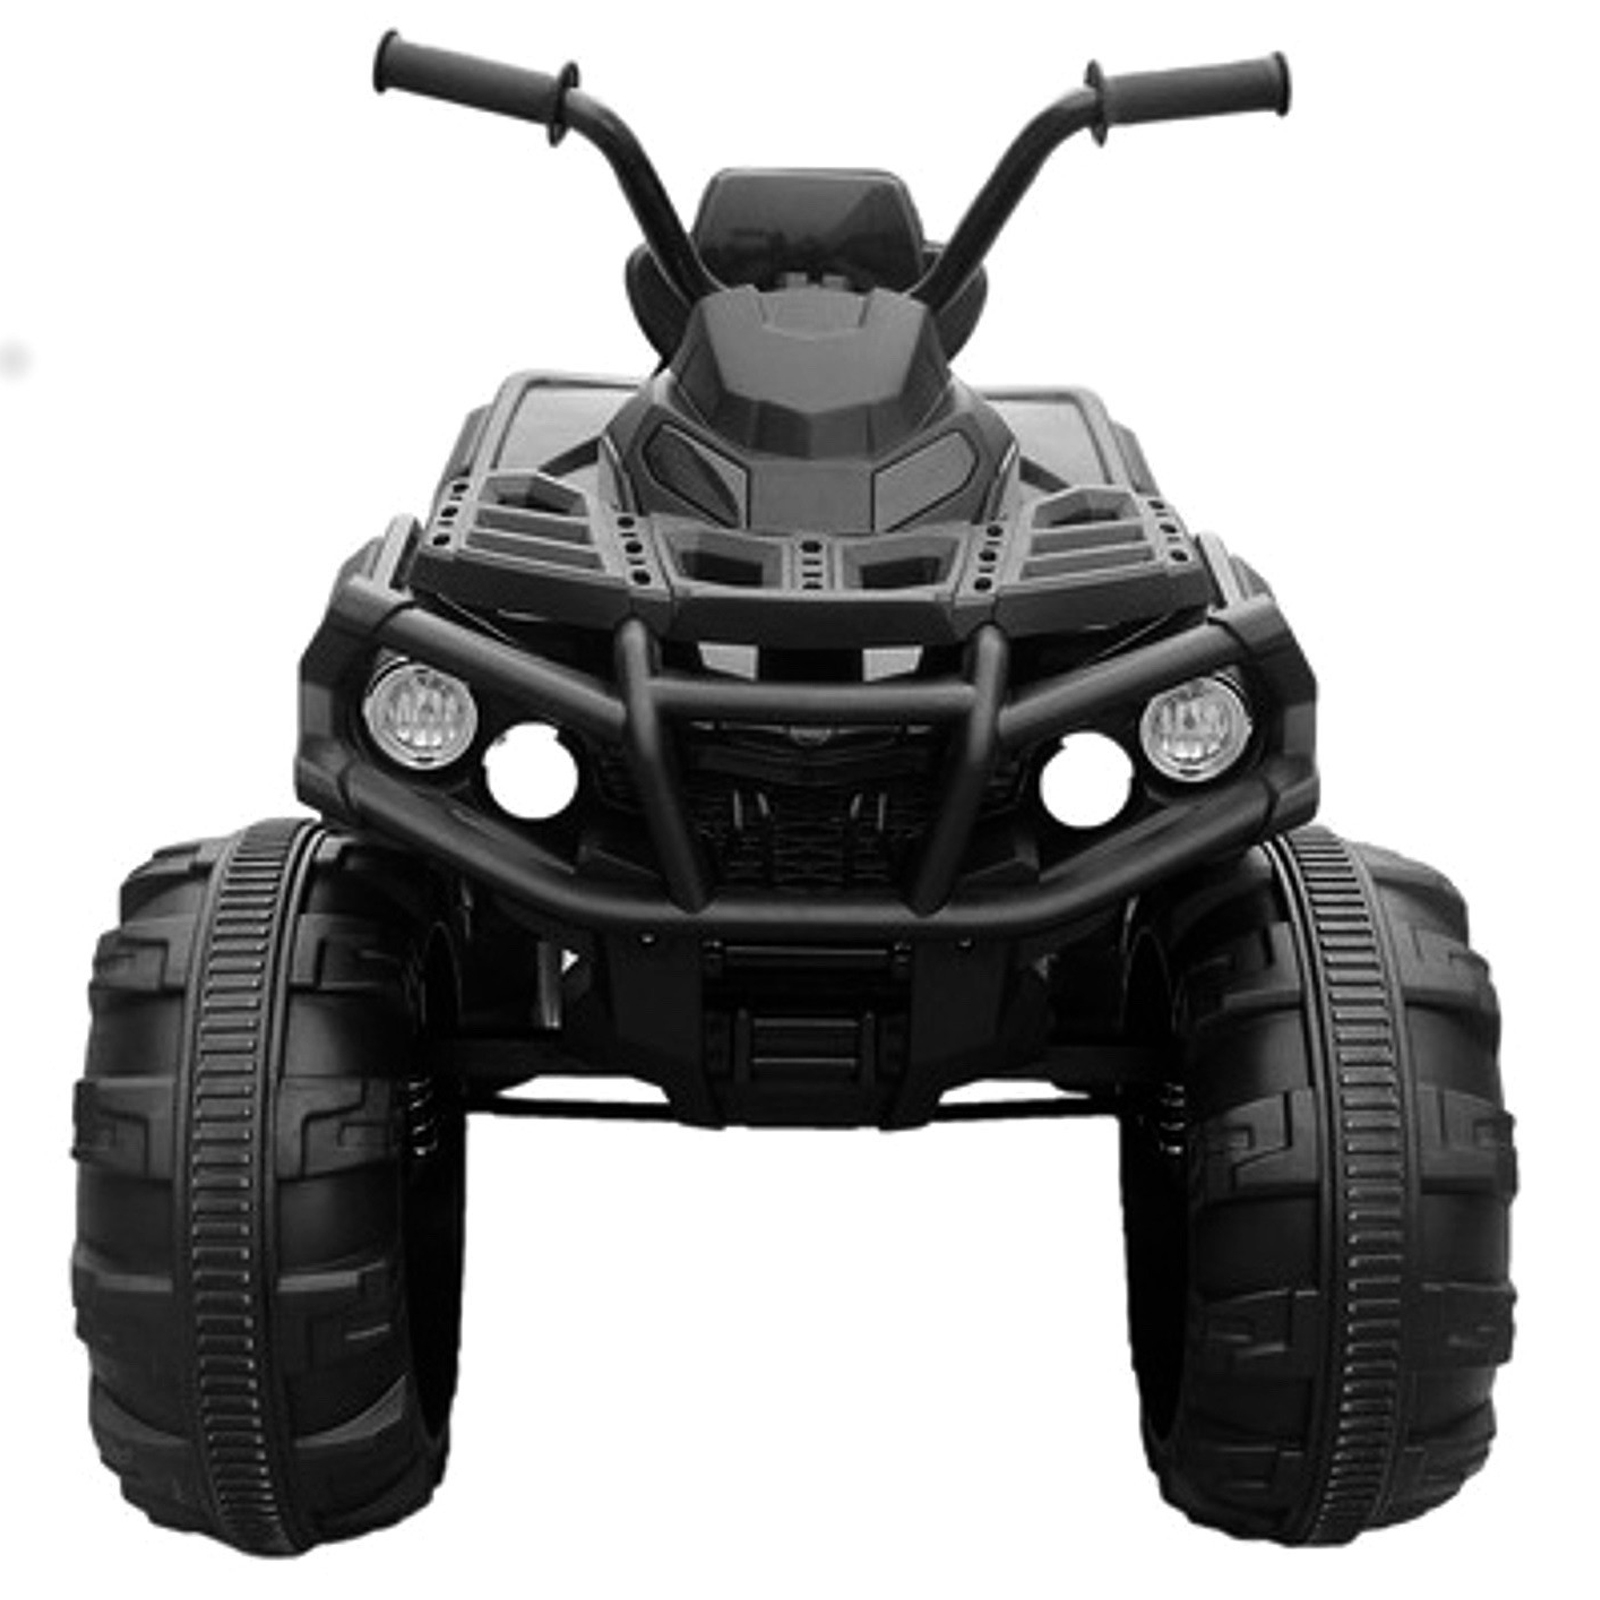 KidPlay Products Kids Ride On Sporty ATV 12V Battery Powered Rider - Black